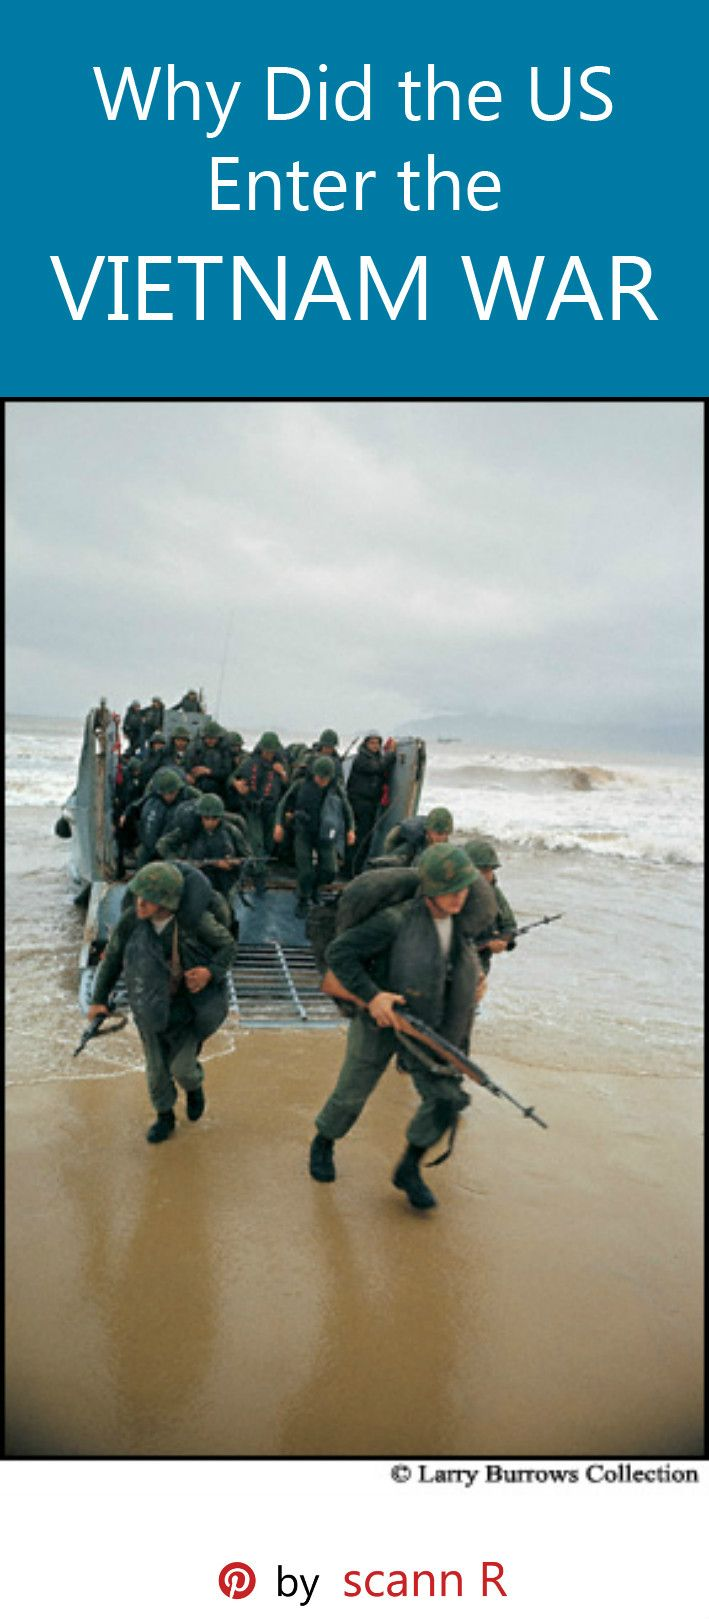 vietnam war and just war theory Fought, such as the vietnam war moreove r, the korean war was the first war in which various nations fought under the flag of the united nations, which  during the korean war however, the just war theory raises serious do ubts about current assumptions regarding the korean war.